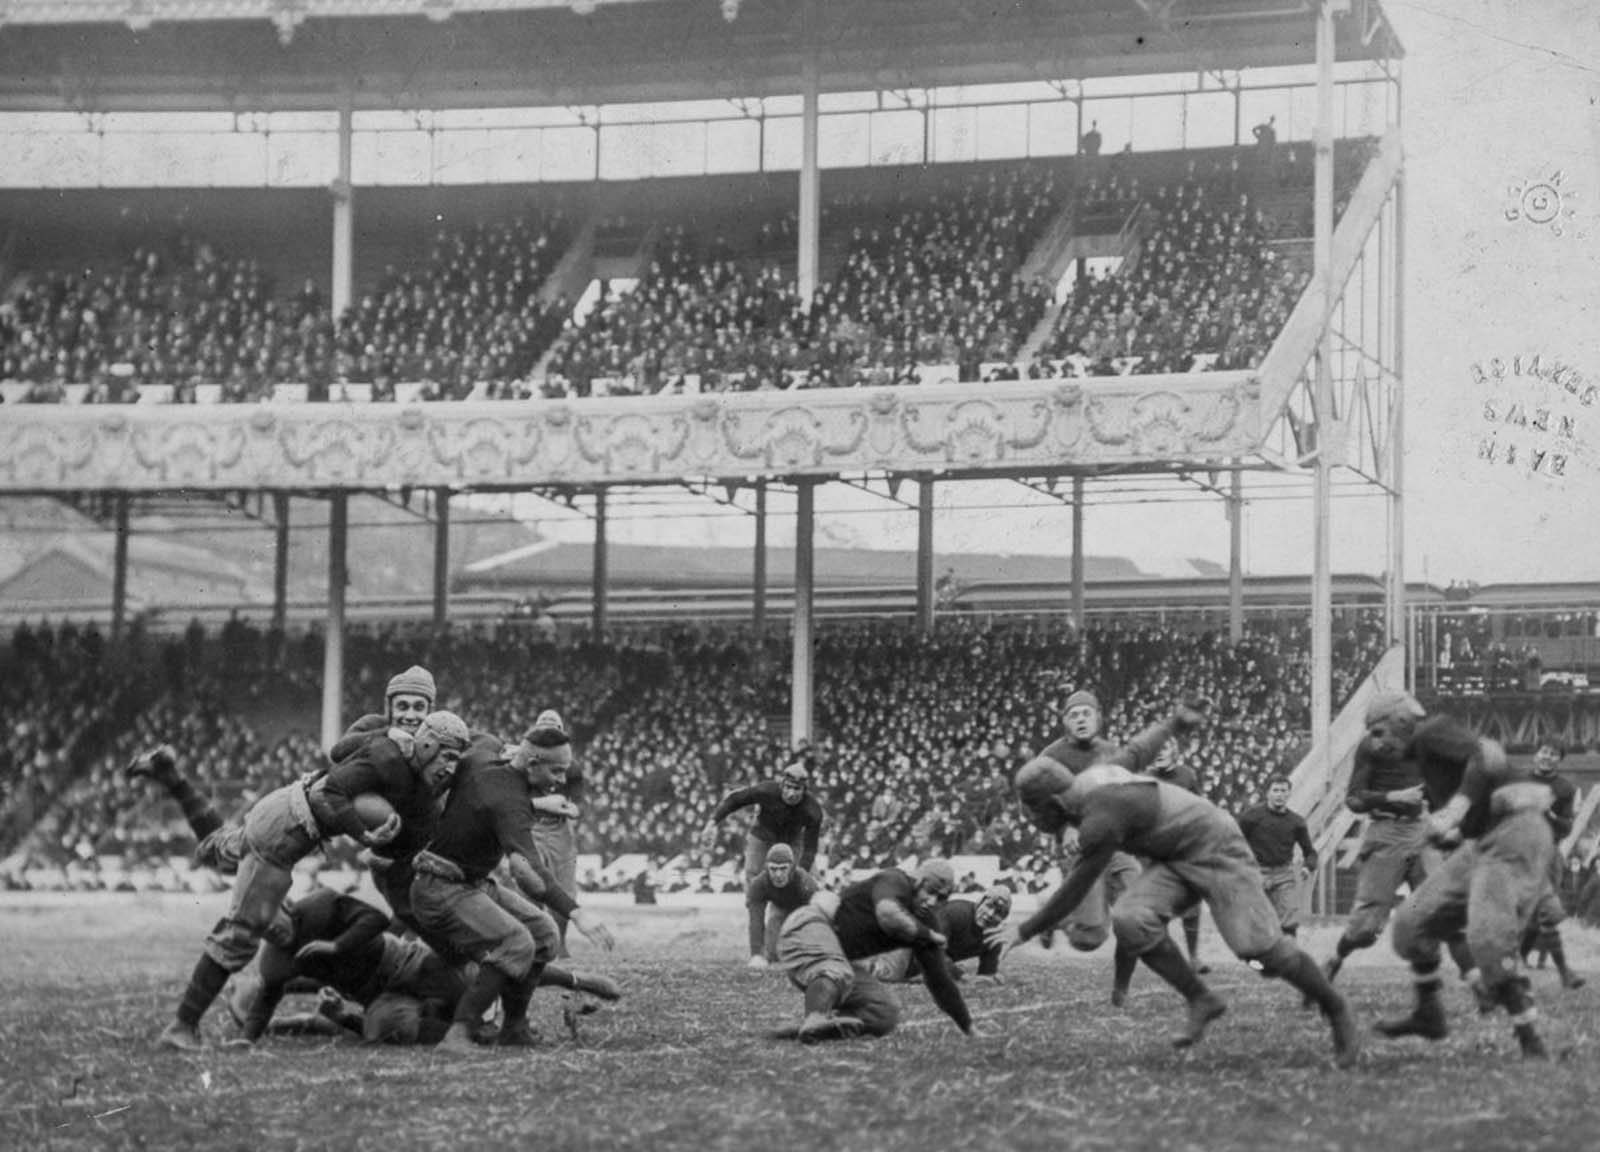 The Army-Navy game at the Polo Grounds in New York. 1916.